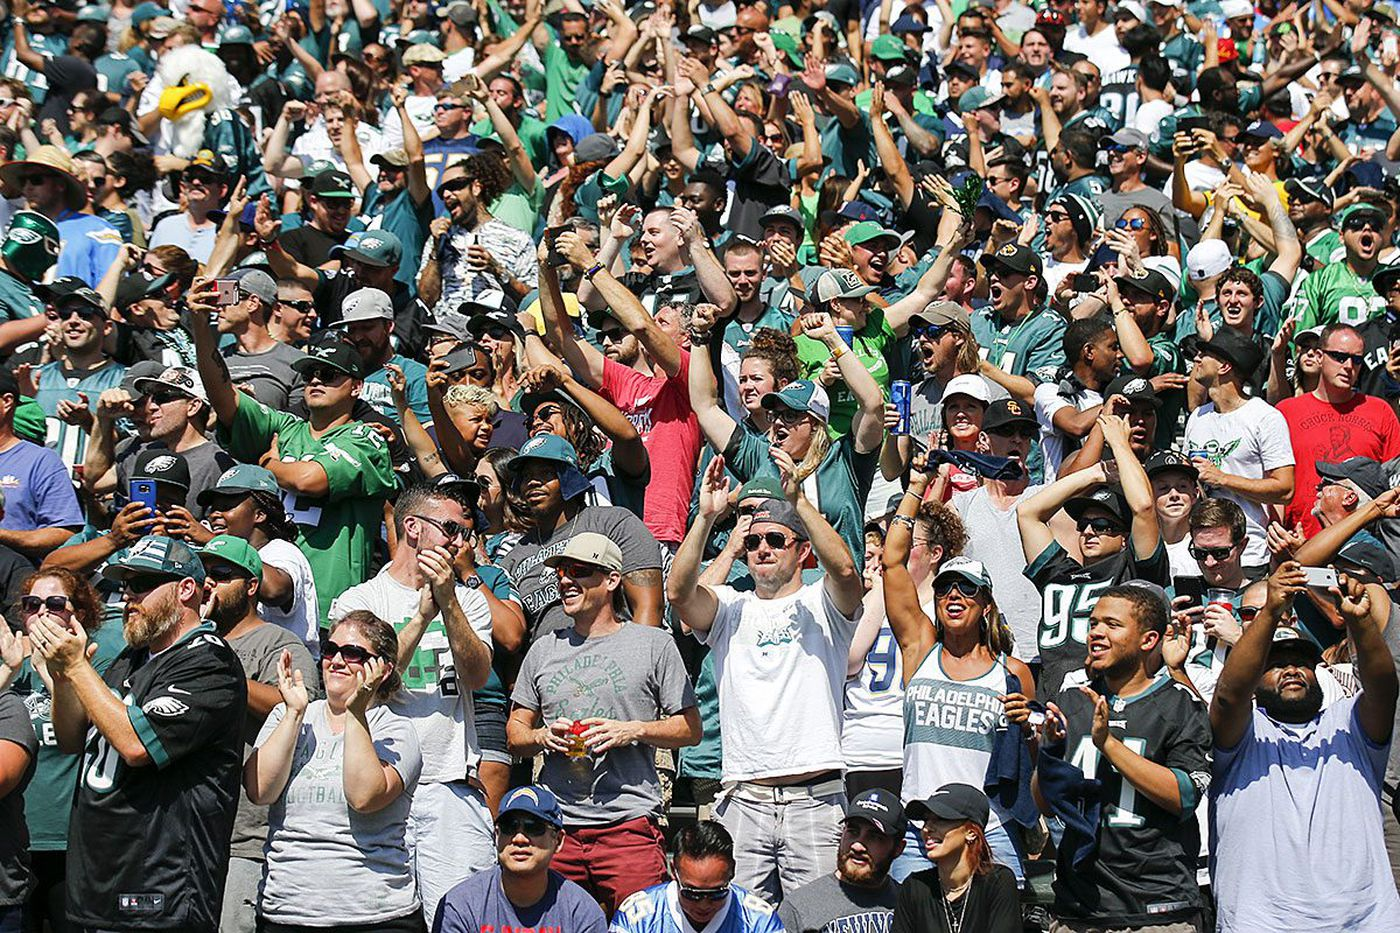 Eagles fans take over Chargers' home